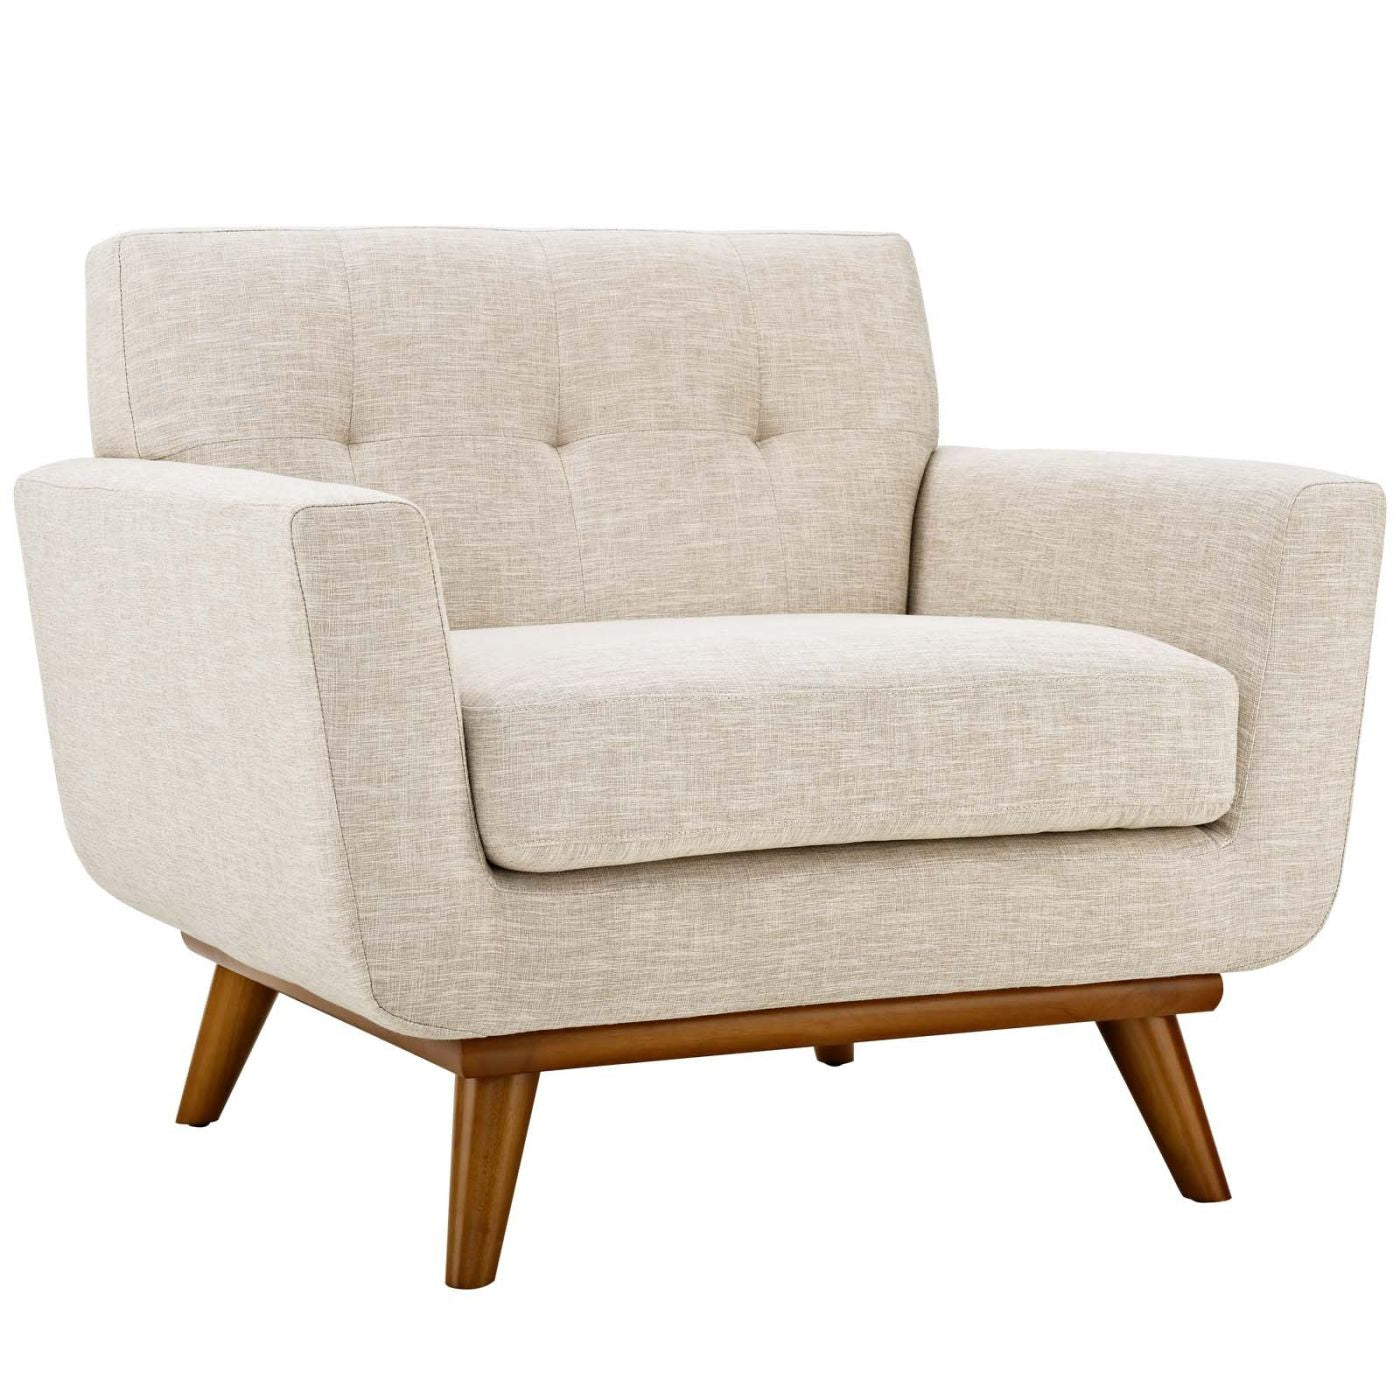 Armchairs - Modway EEI-1178-BEI Engage Upholstered Armchair | 889654111825  | Only $475.00 ...